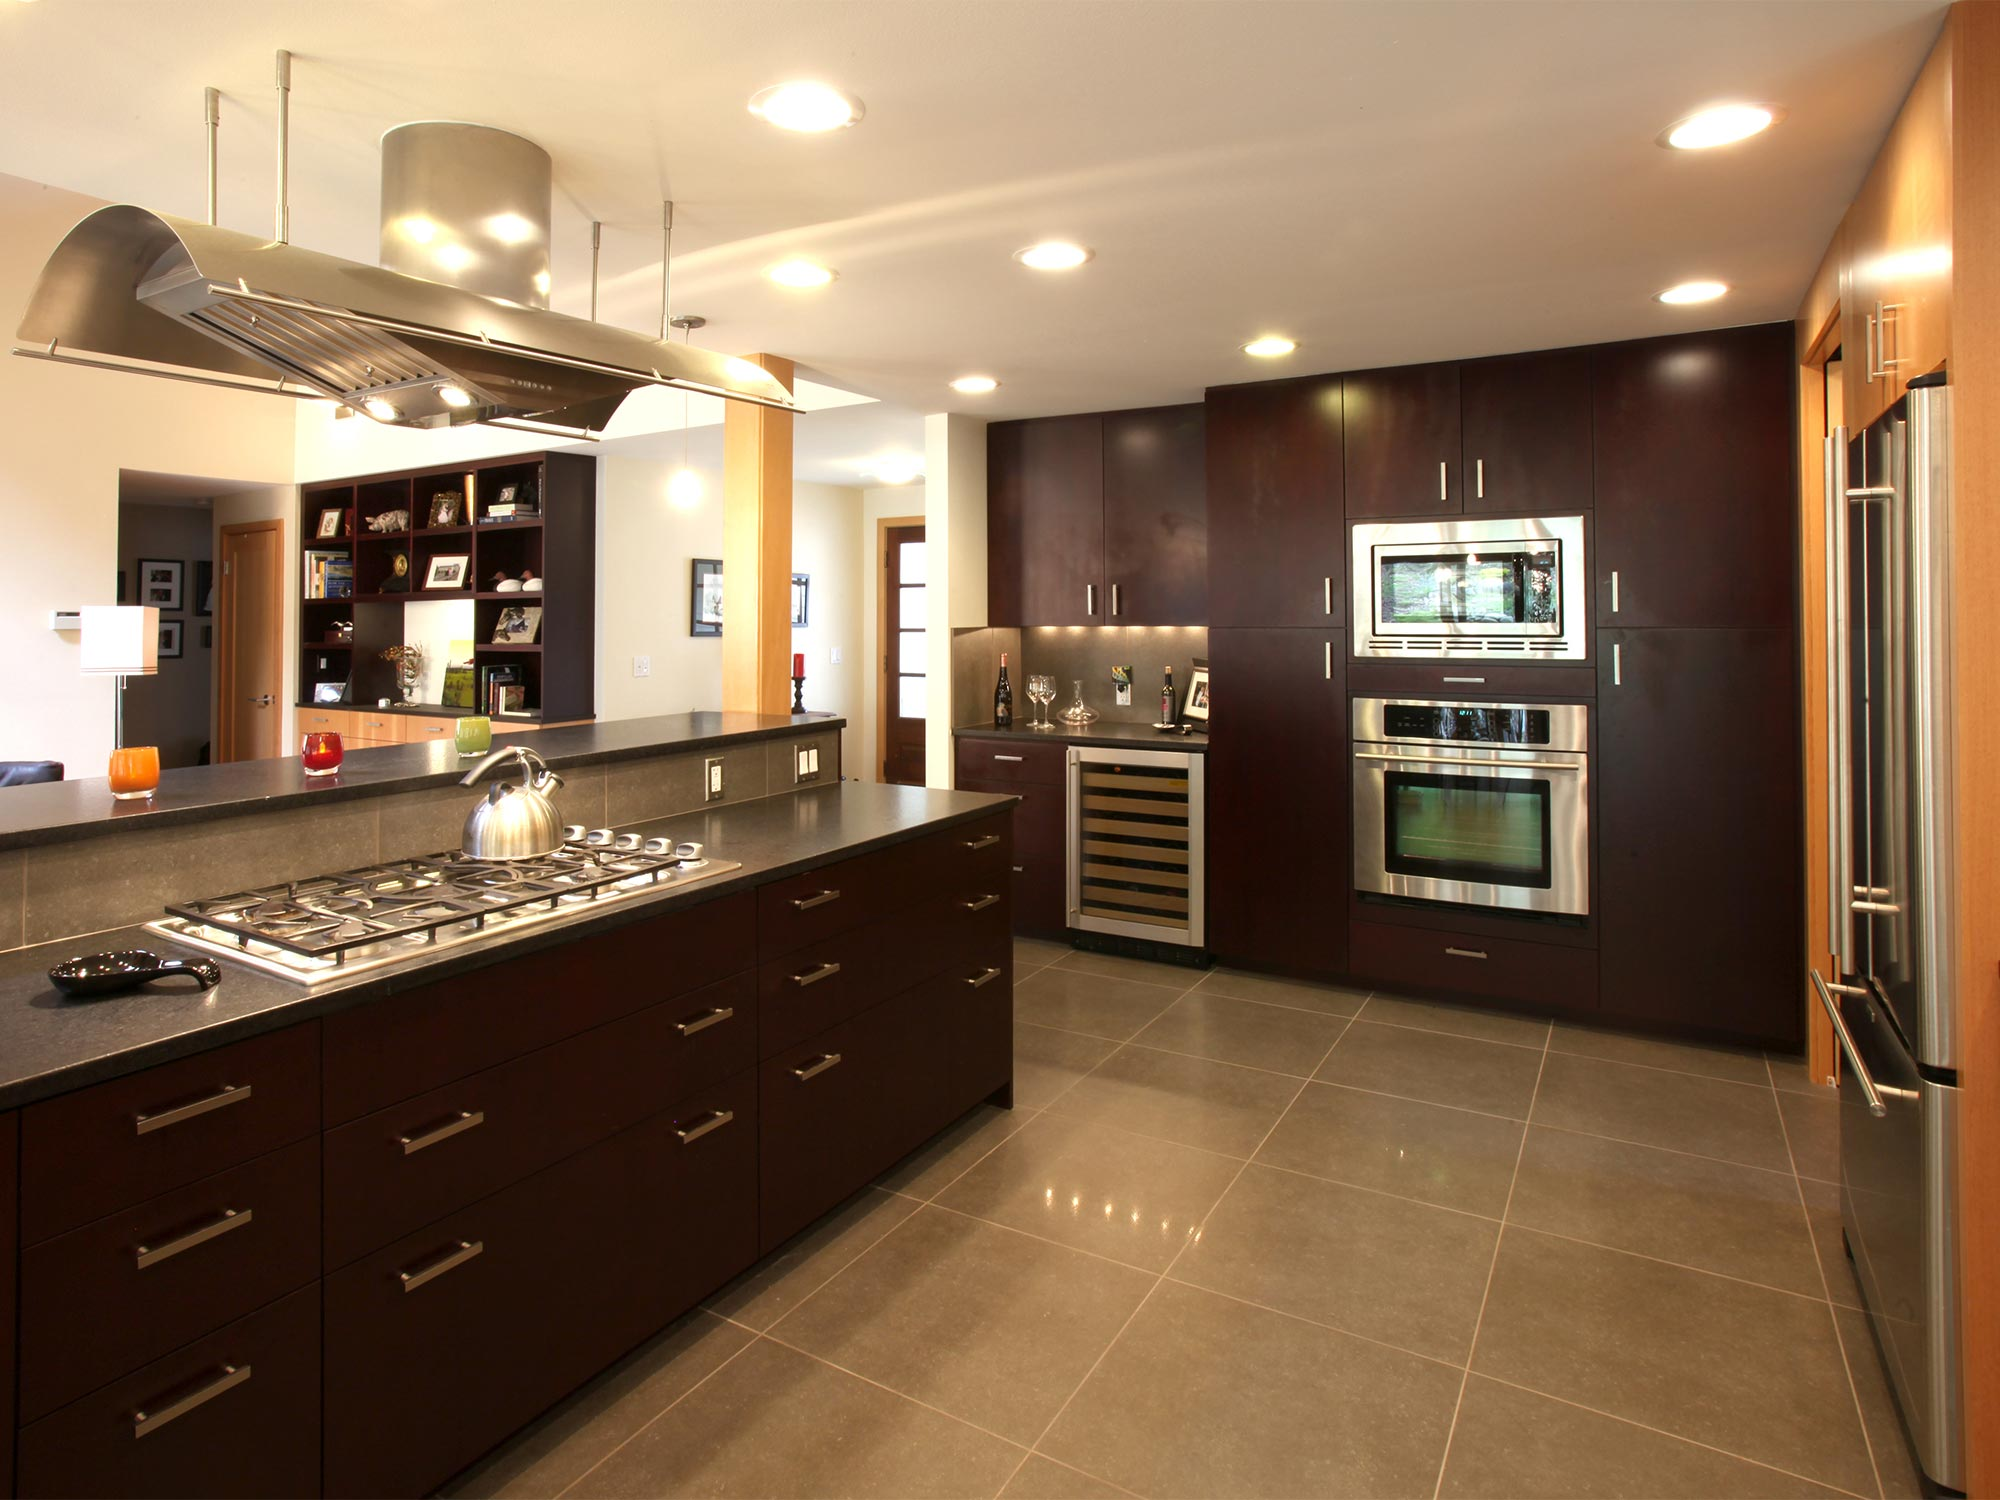 This kitchen, dining and living room renovation opened up a series of traditionally segmented rooms to create a free flowing living space with a strong connection to its site.